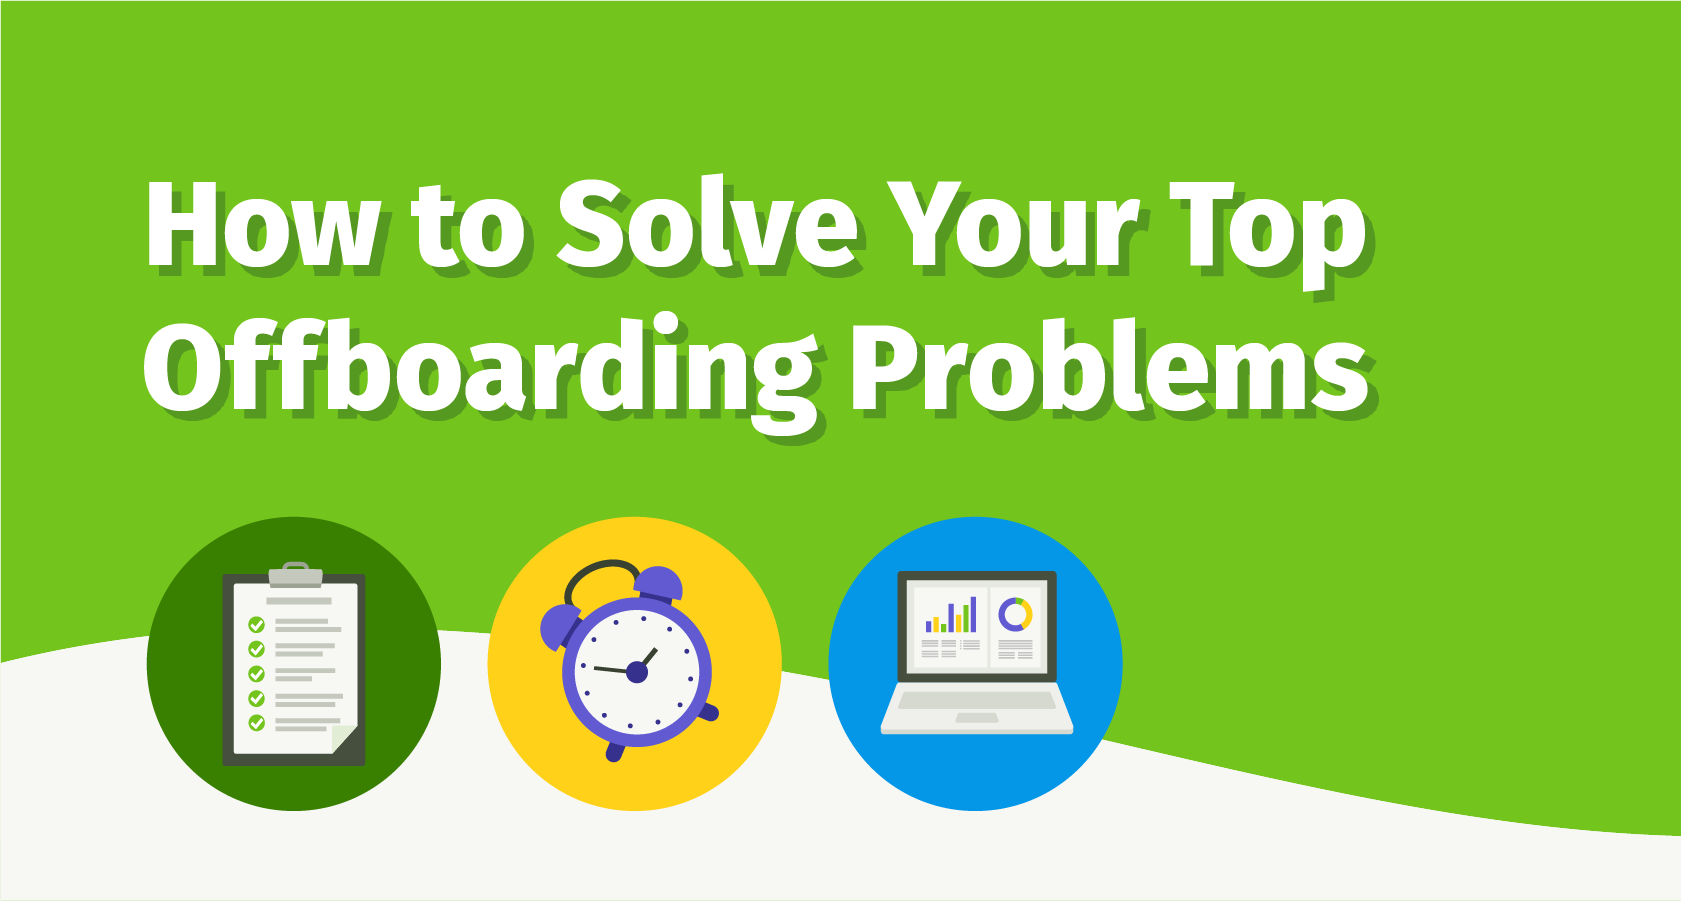 How to Solve Your Top Offboarding Problems